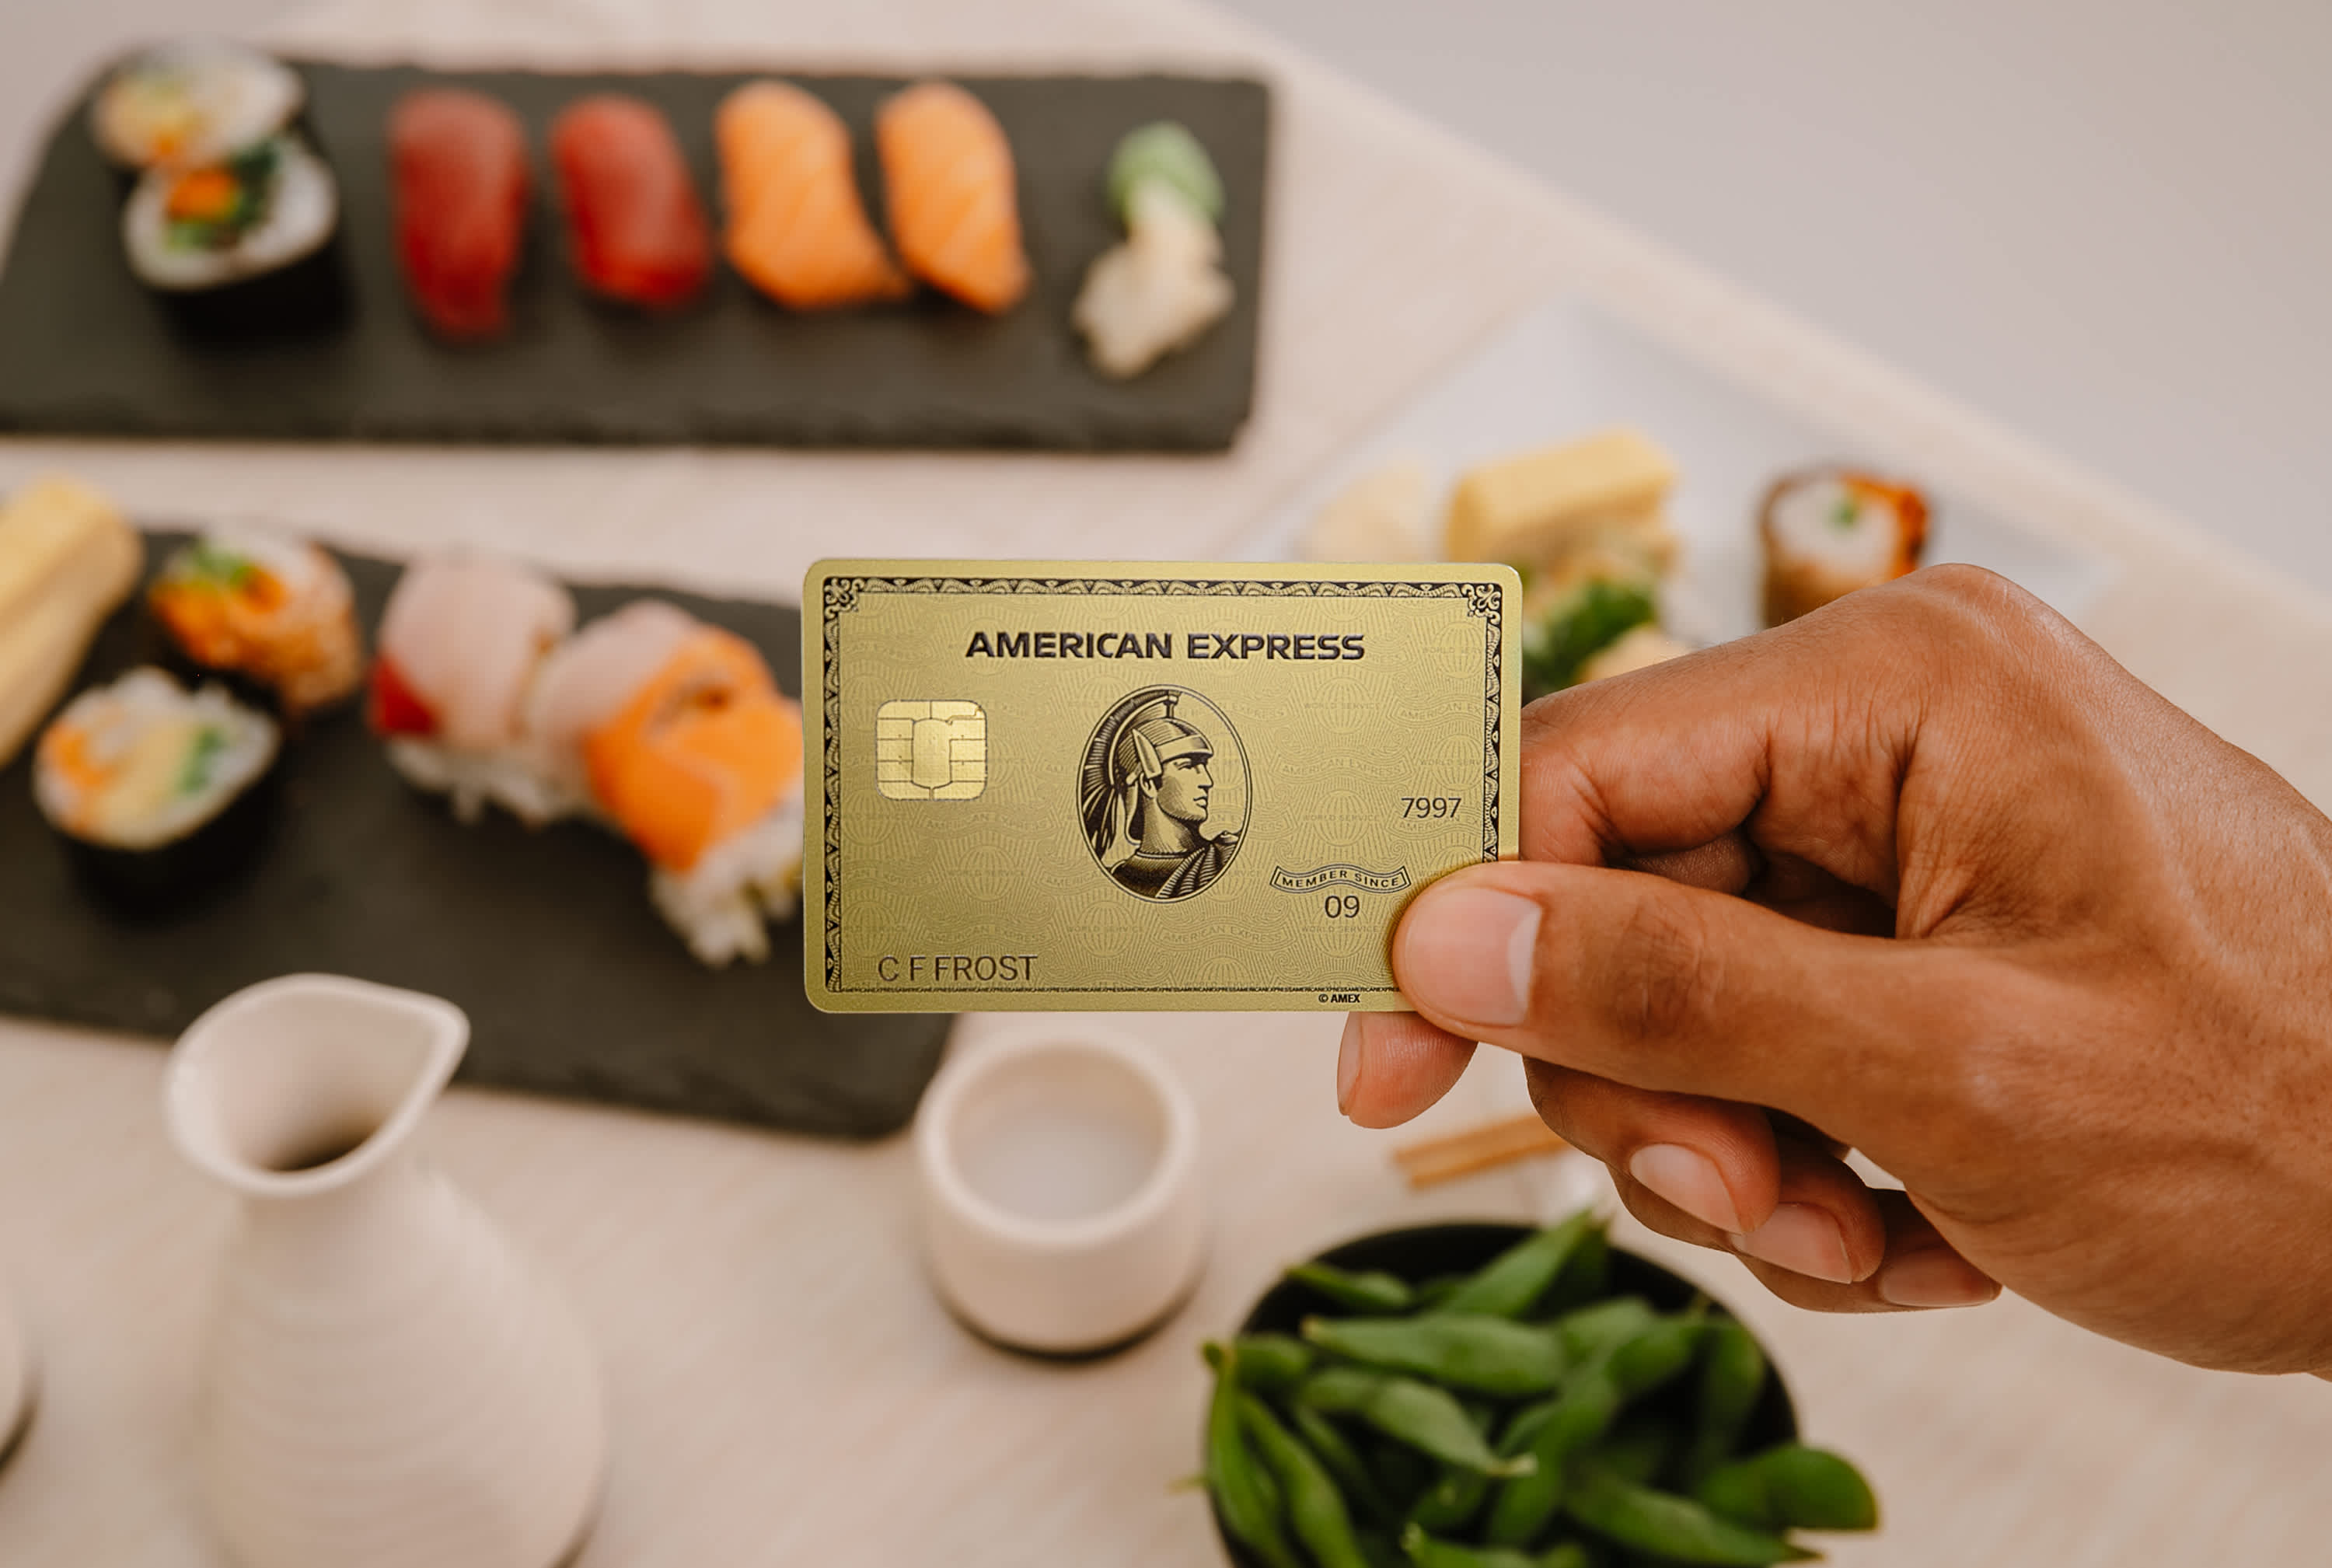 How to save over $350 on vacation by paying with the Amex Gold Card